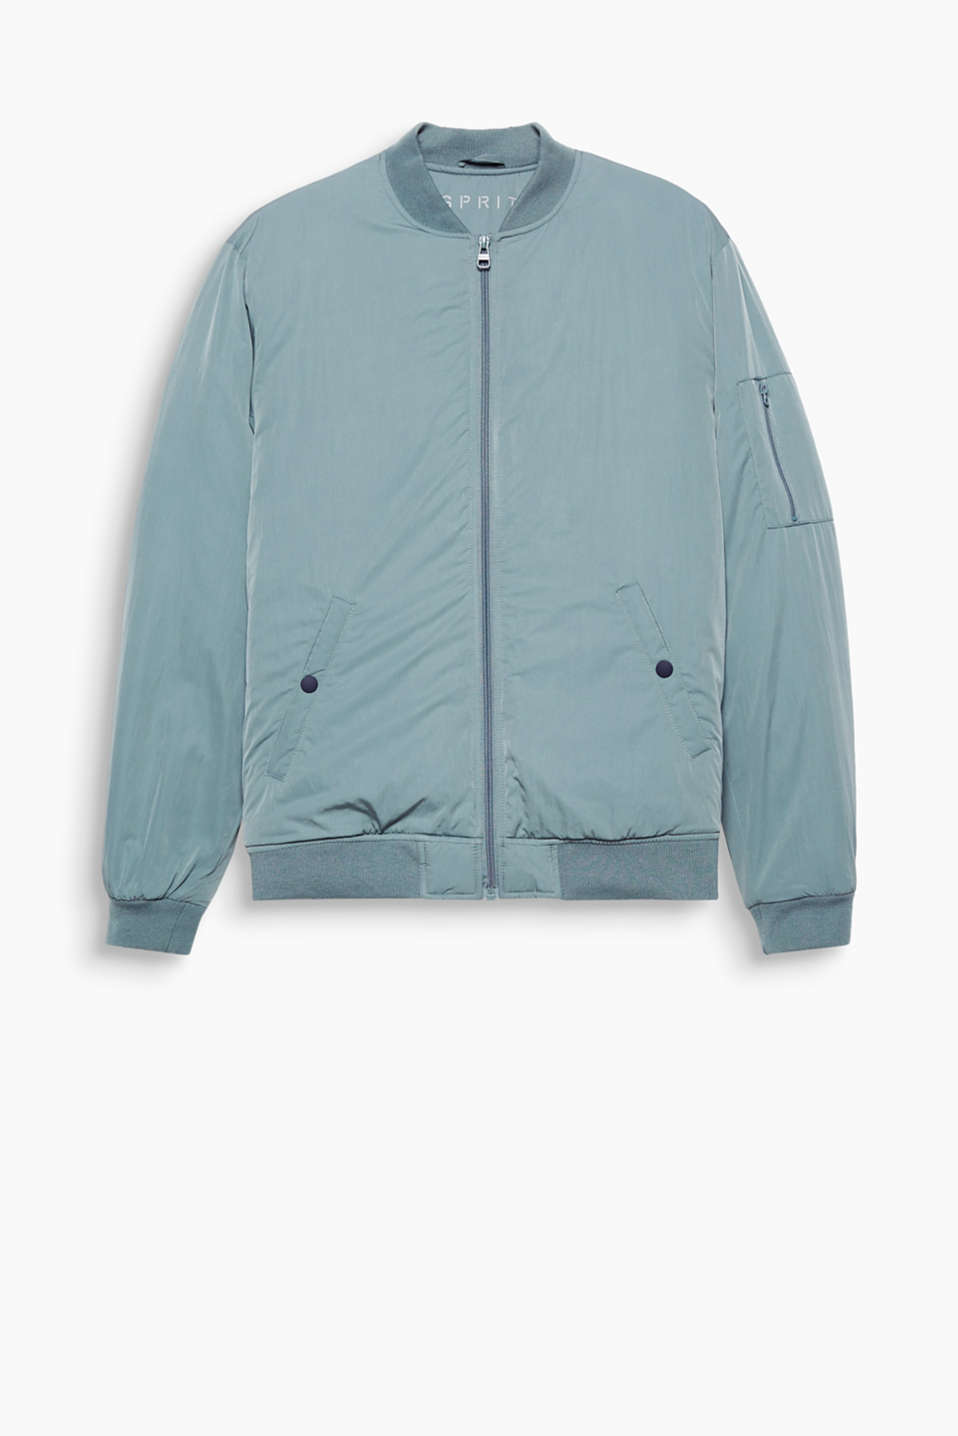 An urban classic, even for colder days! Bomber jacket with warming padding